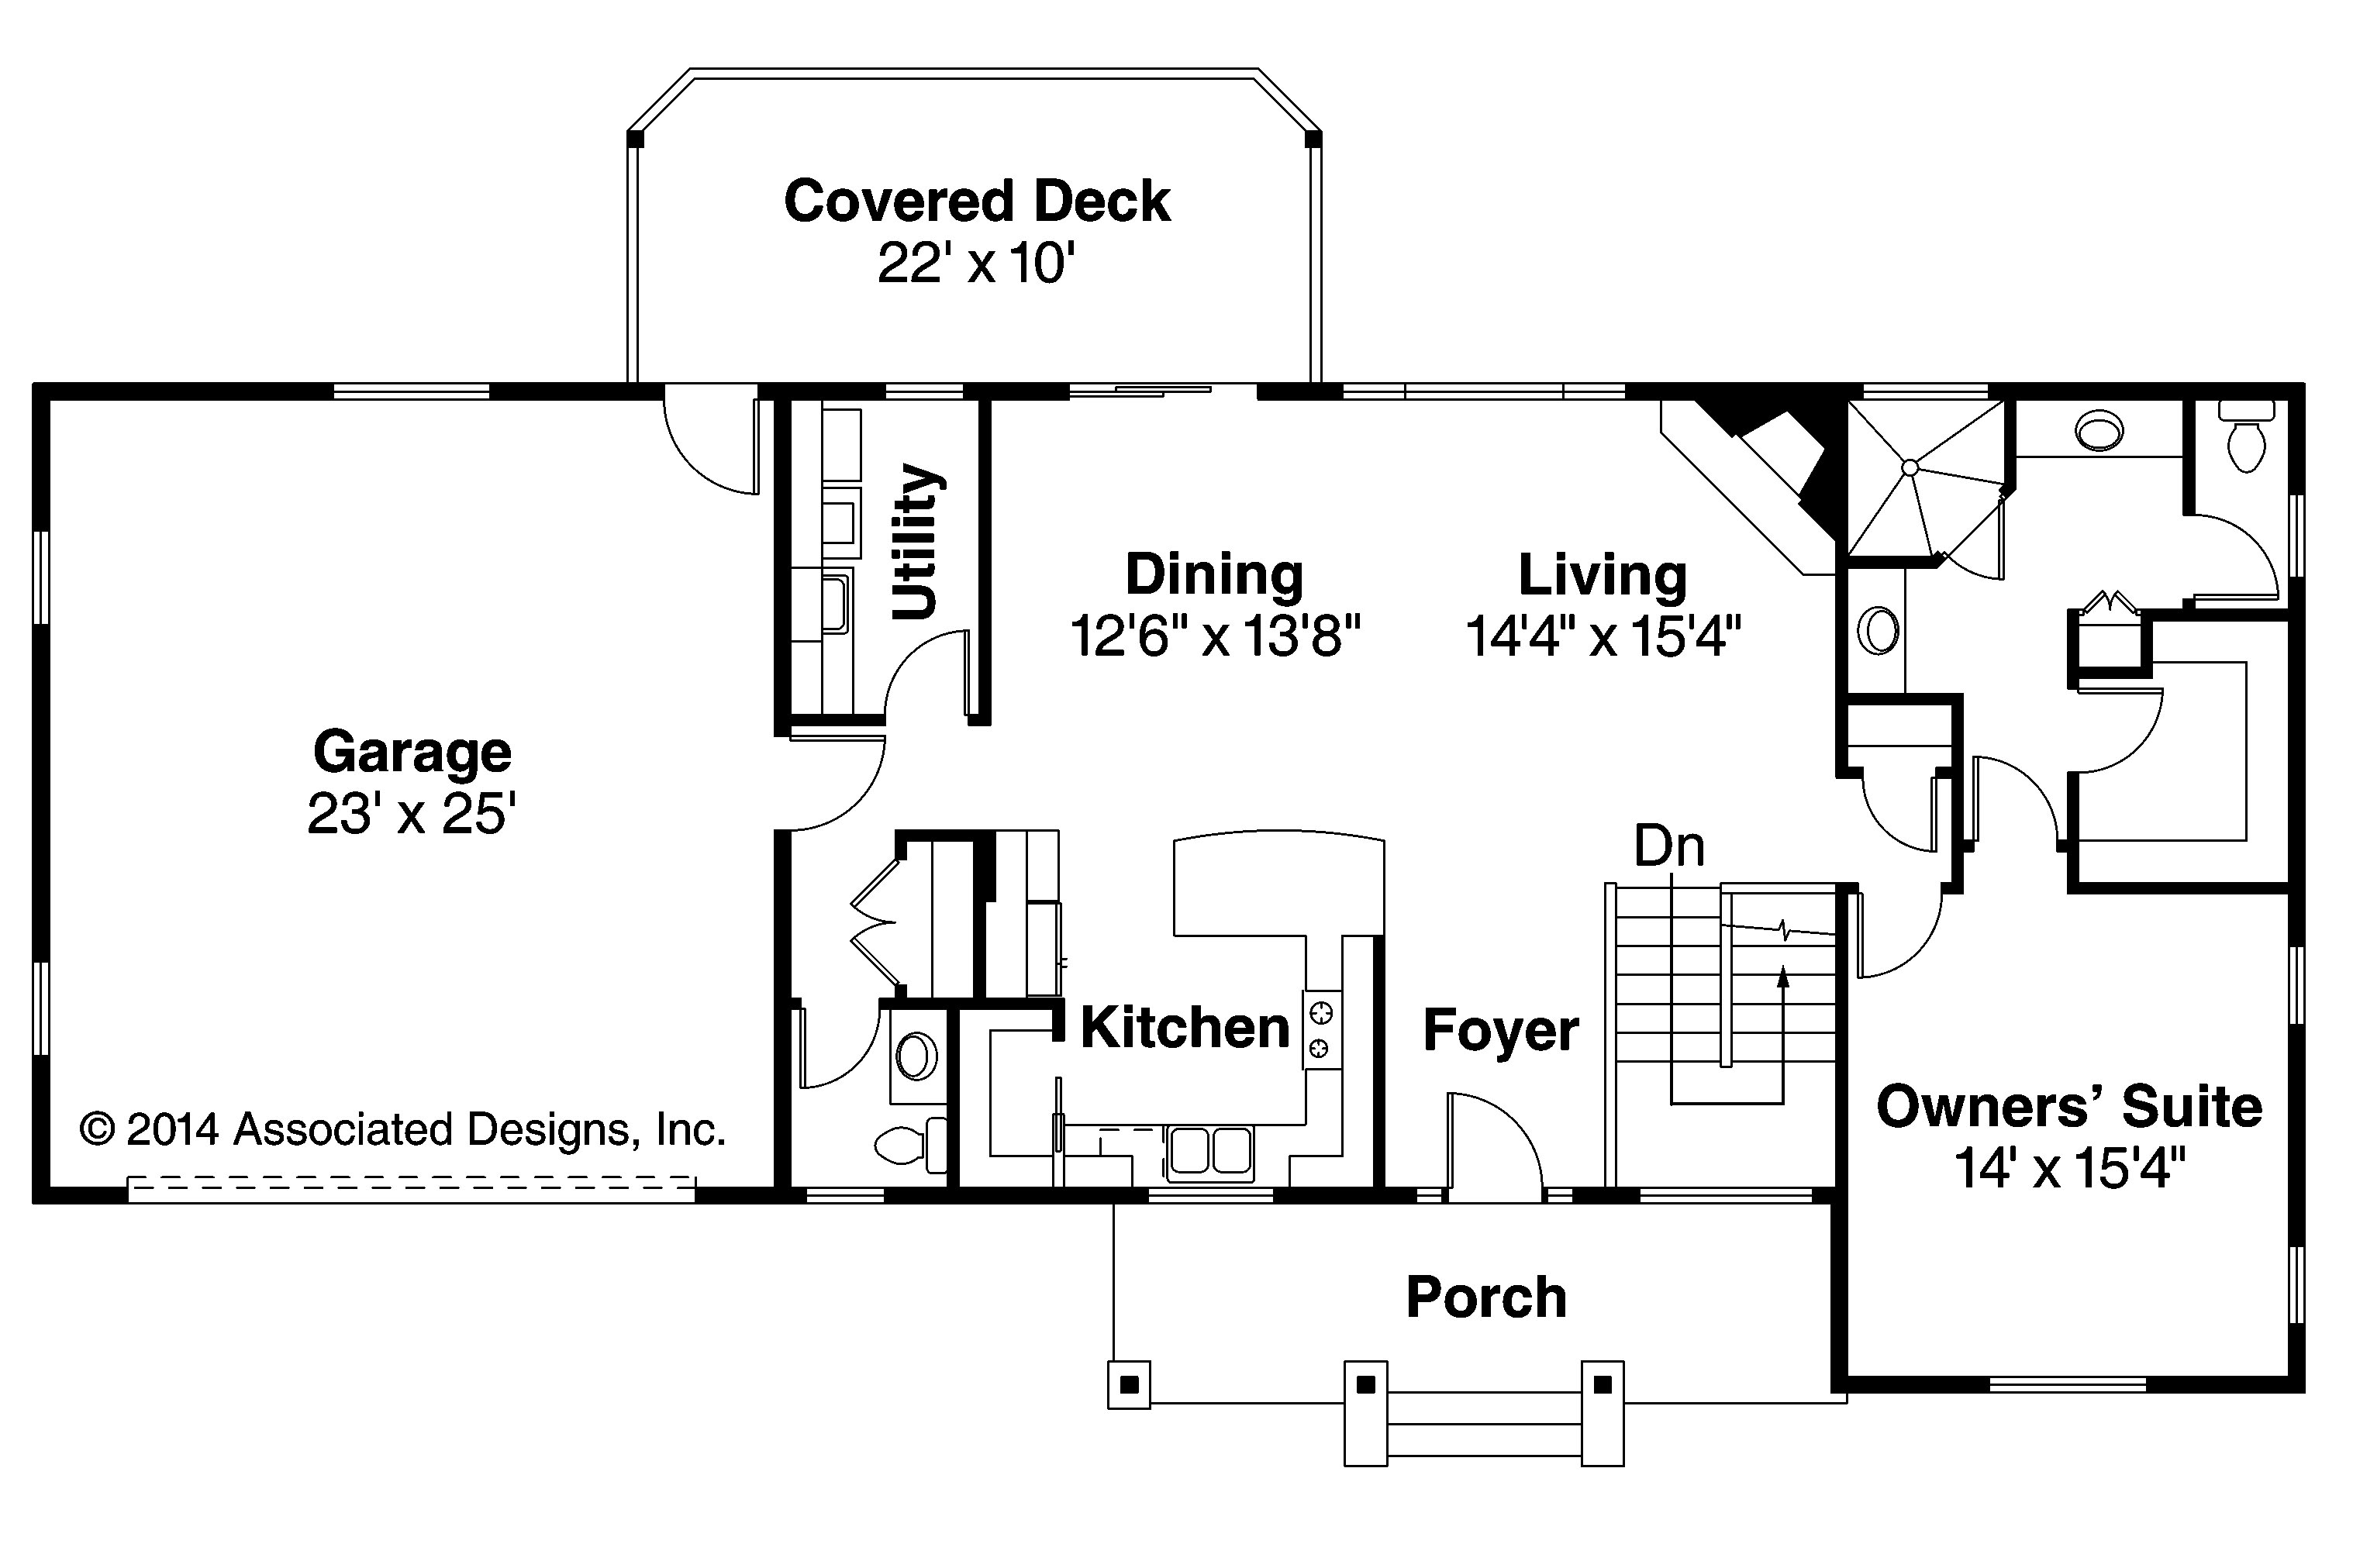 ranch house plan gatsby 30 664 first floor plan - Ranch Floor Plans